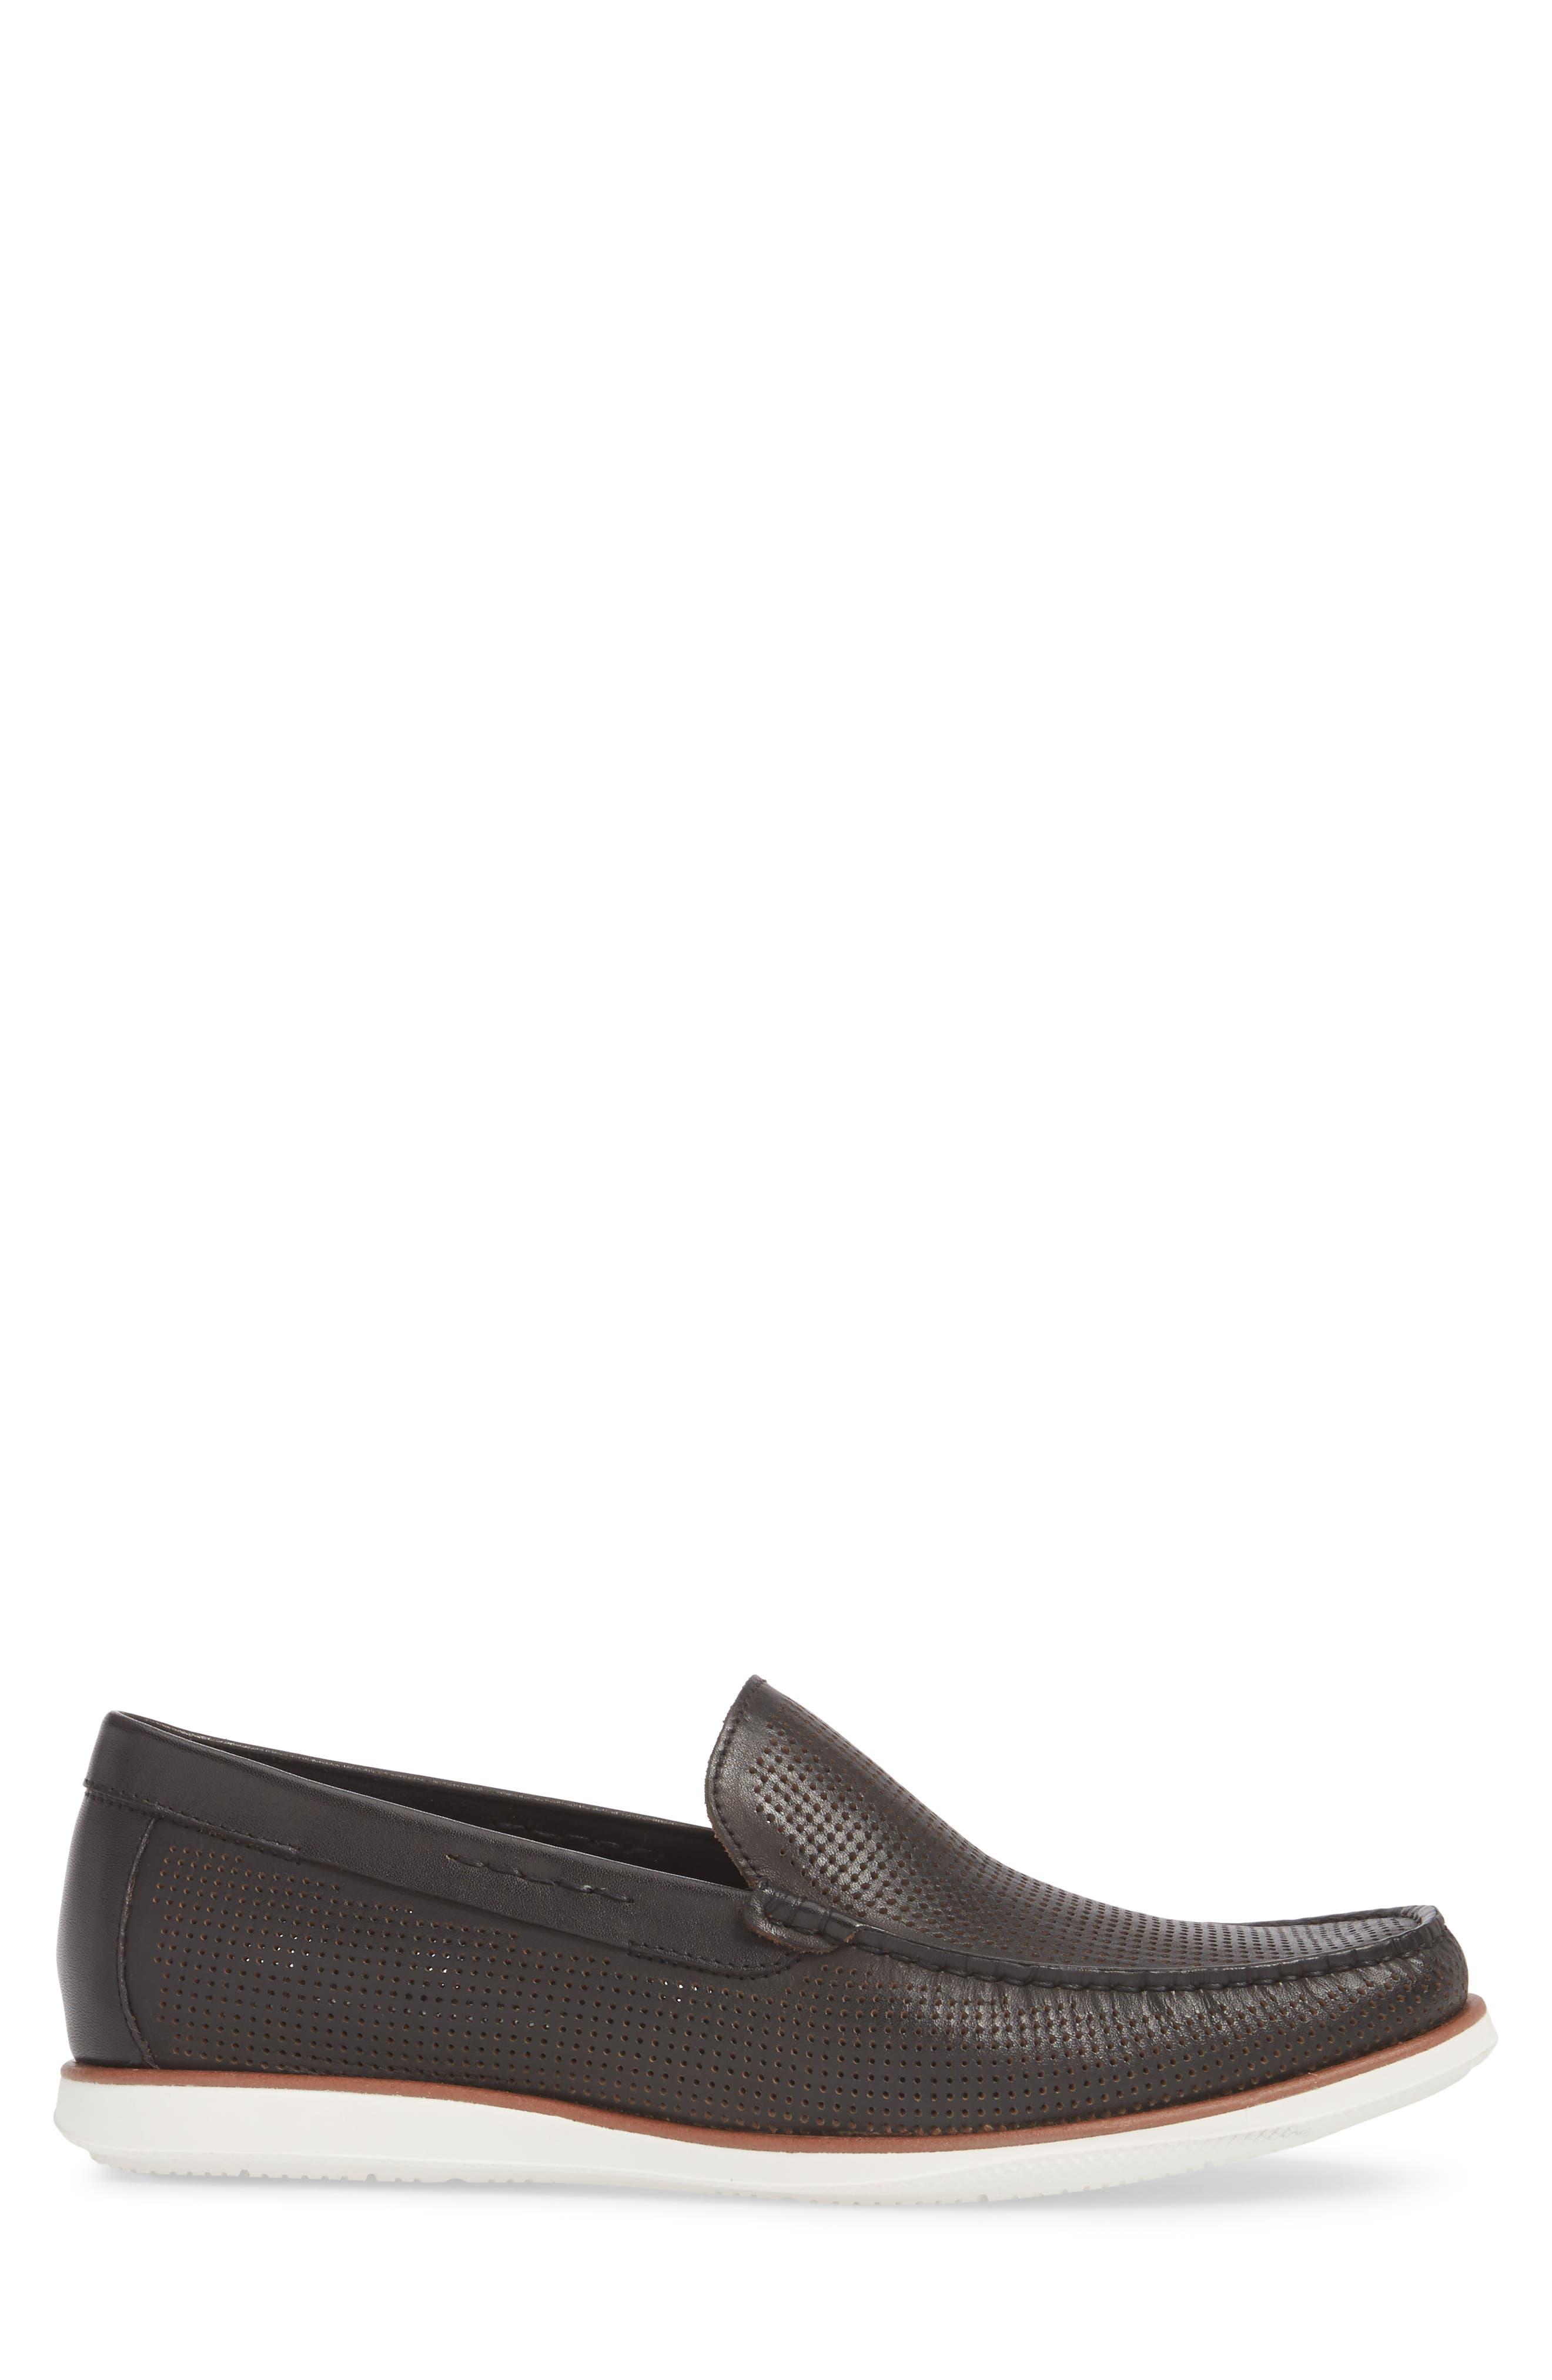 Cyrus Venetian Loafer,                             Alternate thumbnail 7, color,